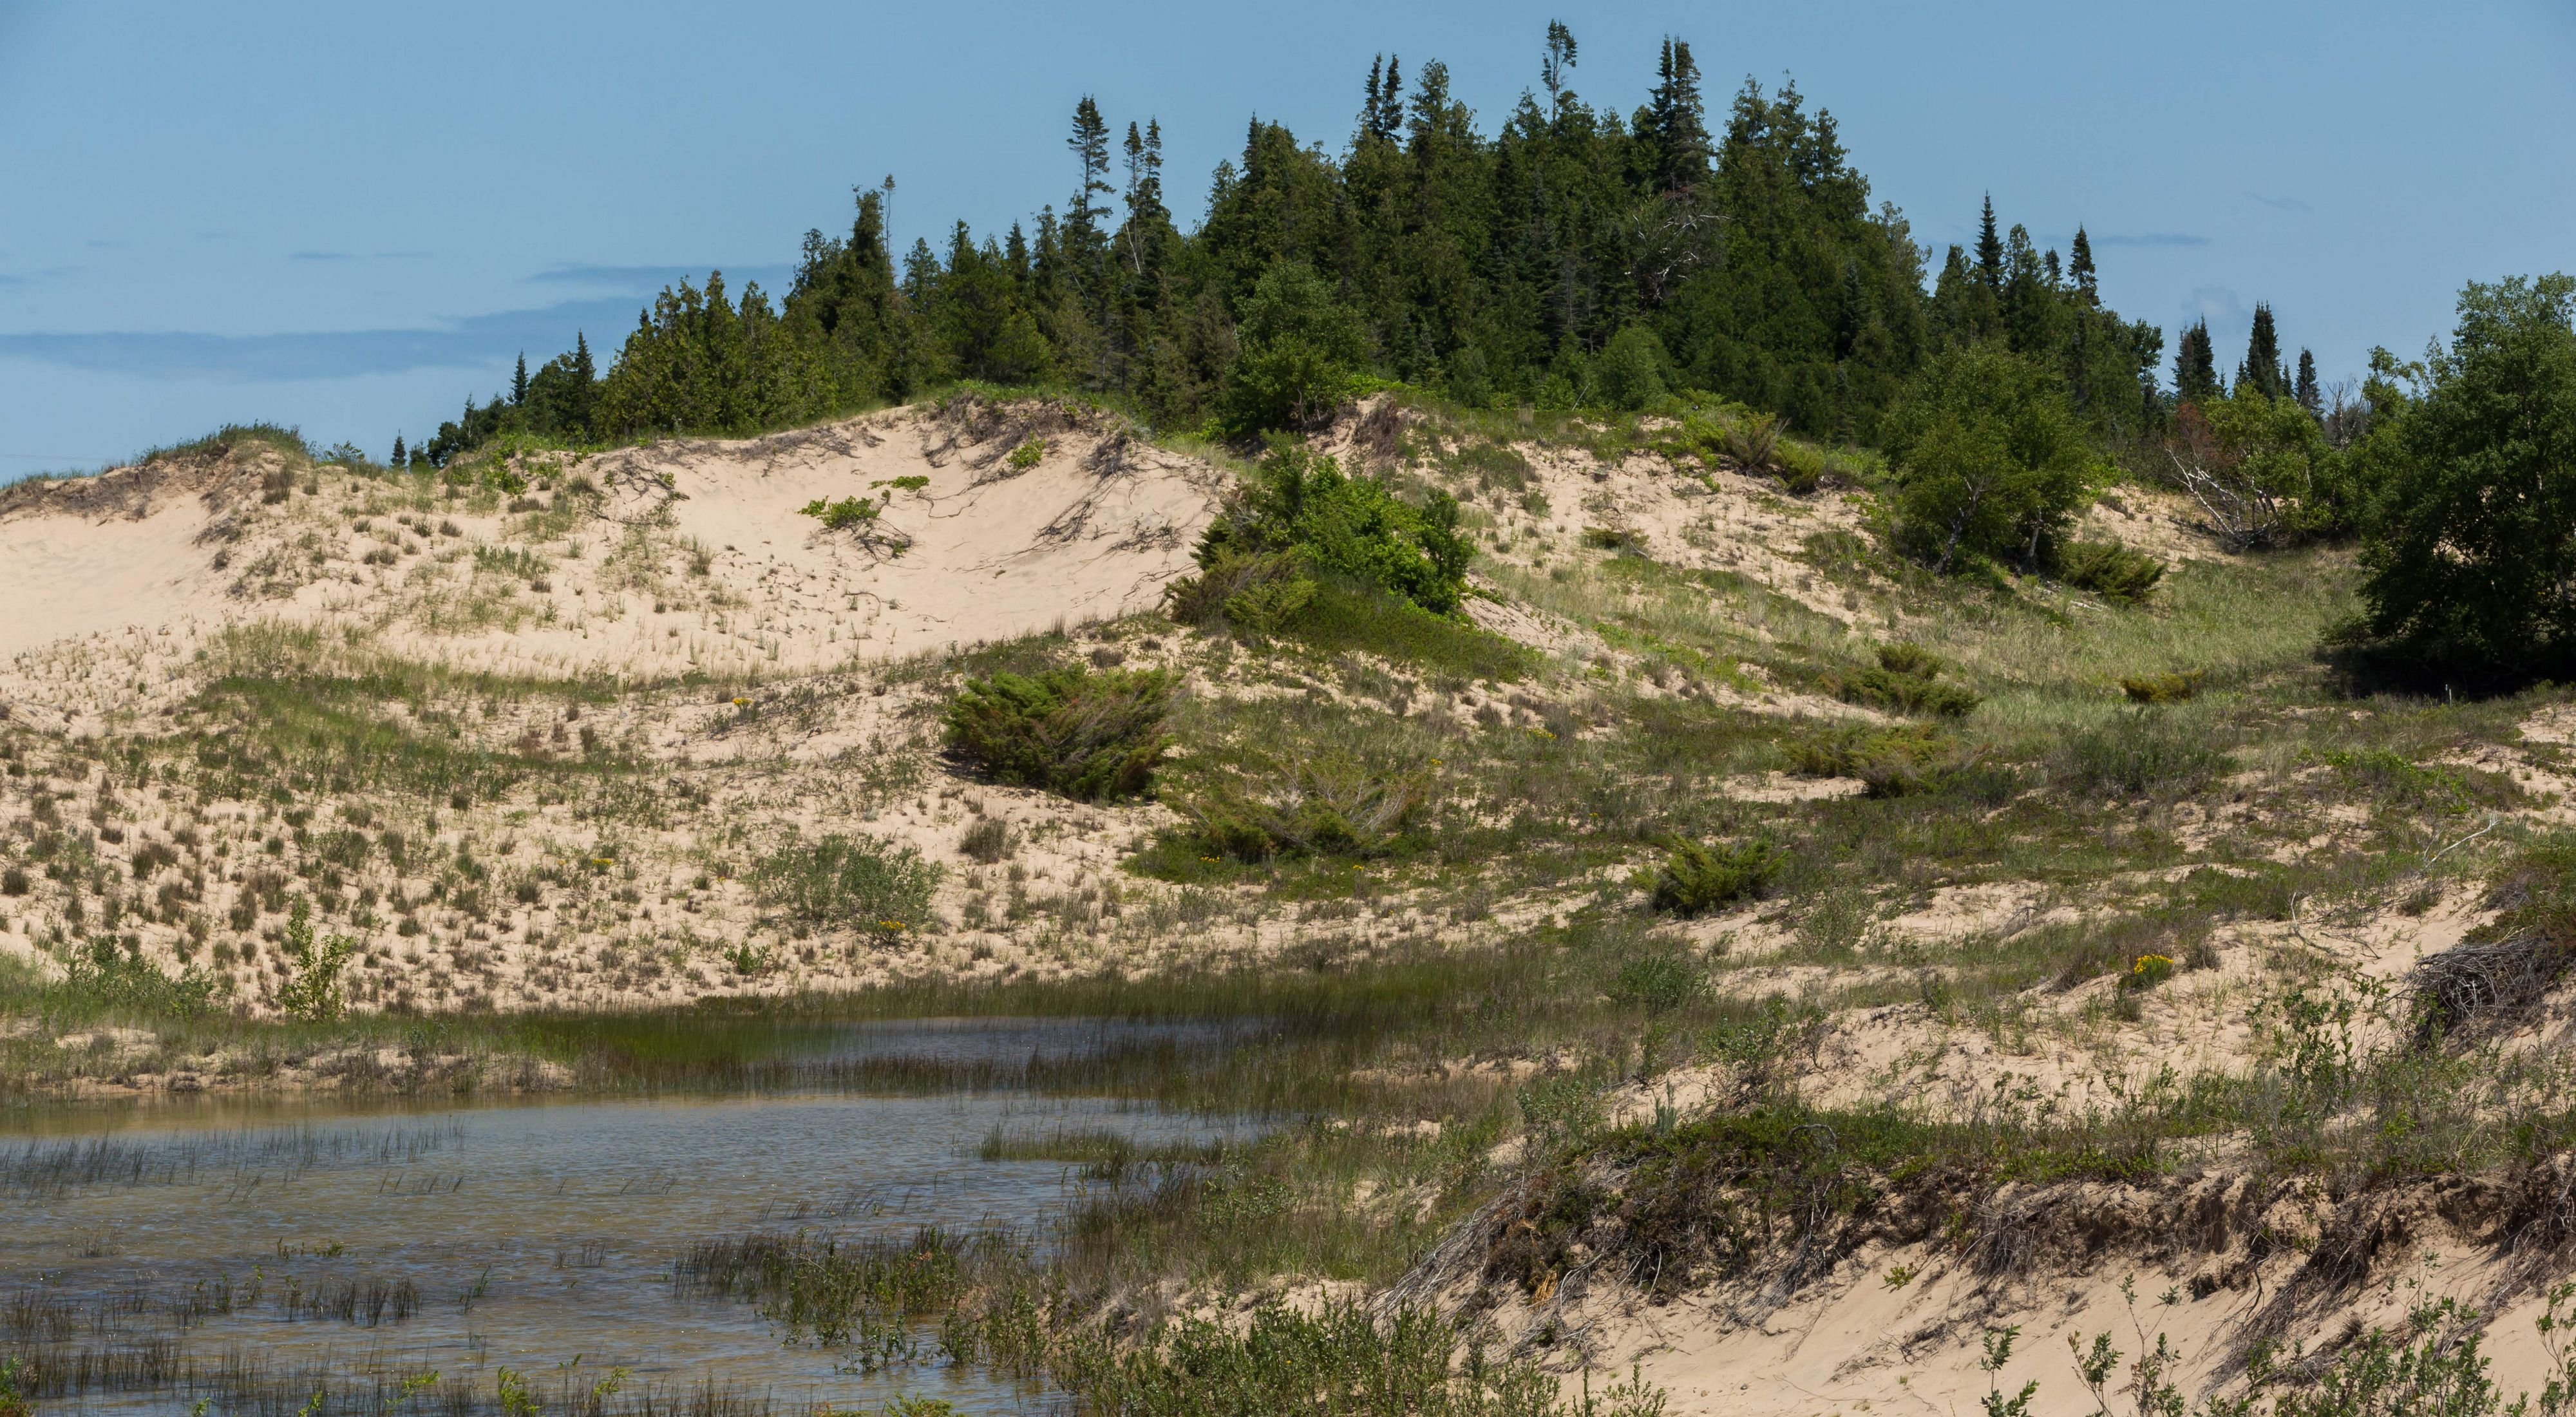 Small forest on top of dune next to big lake.